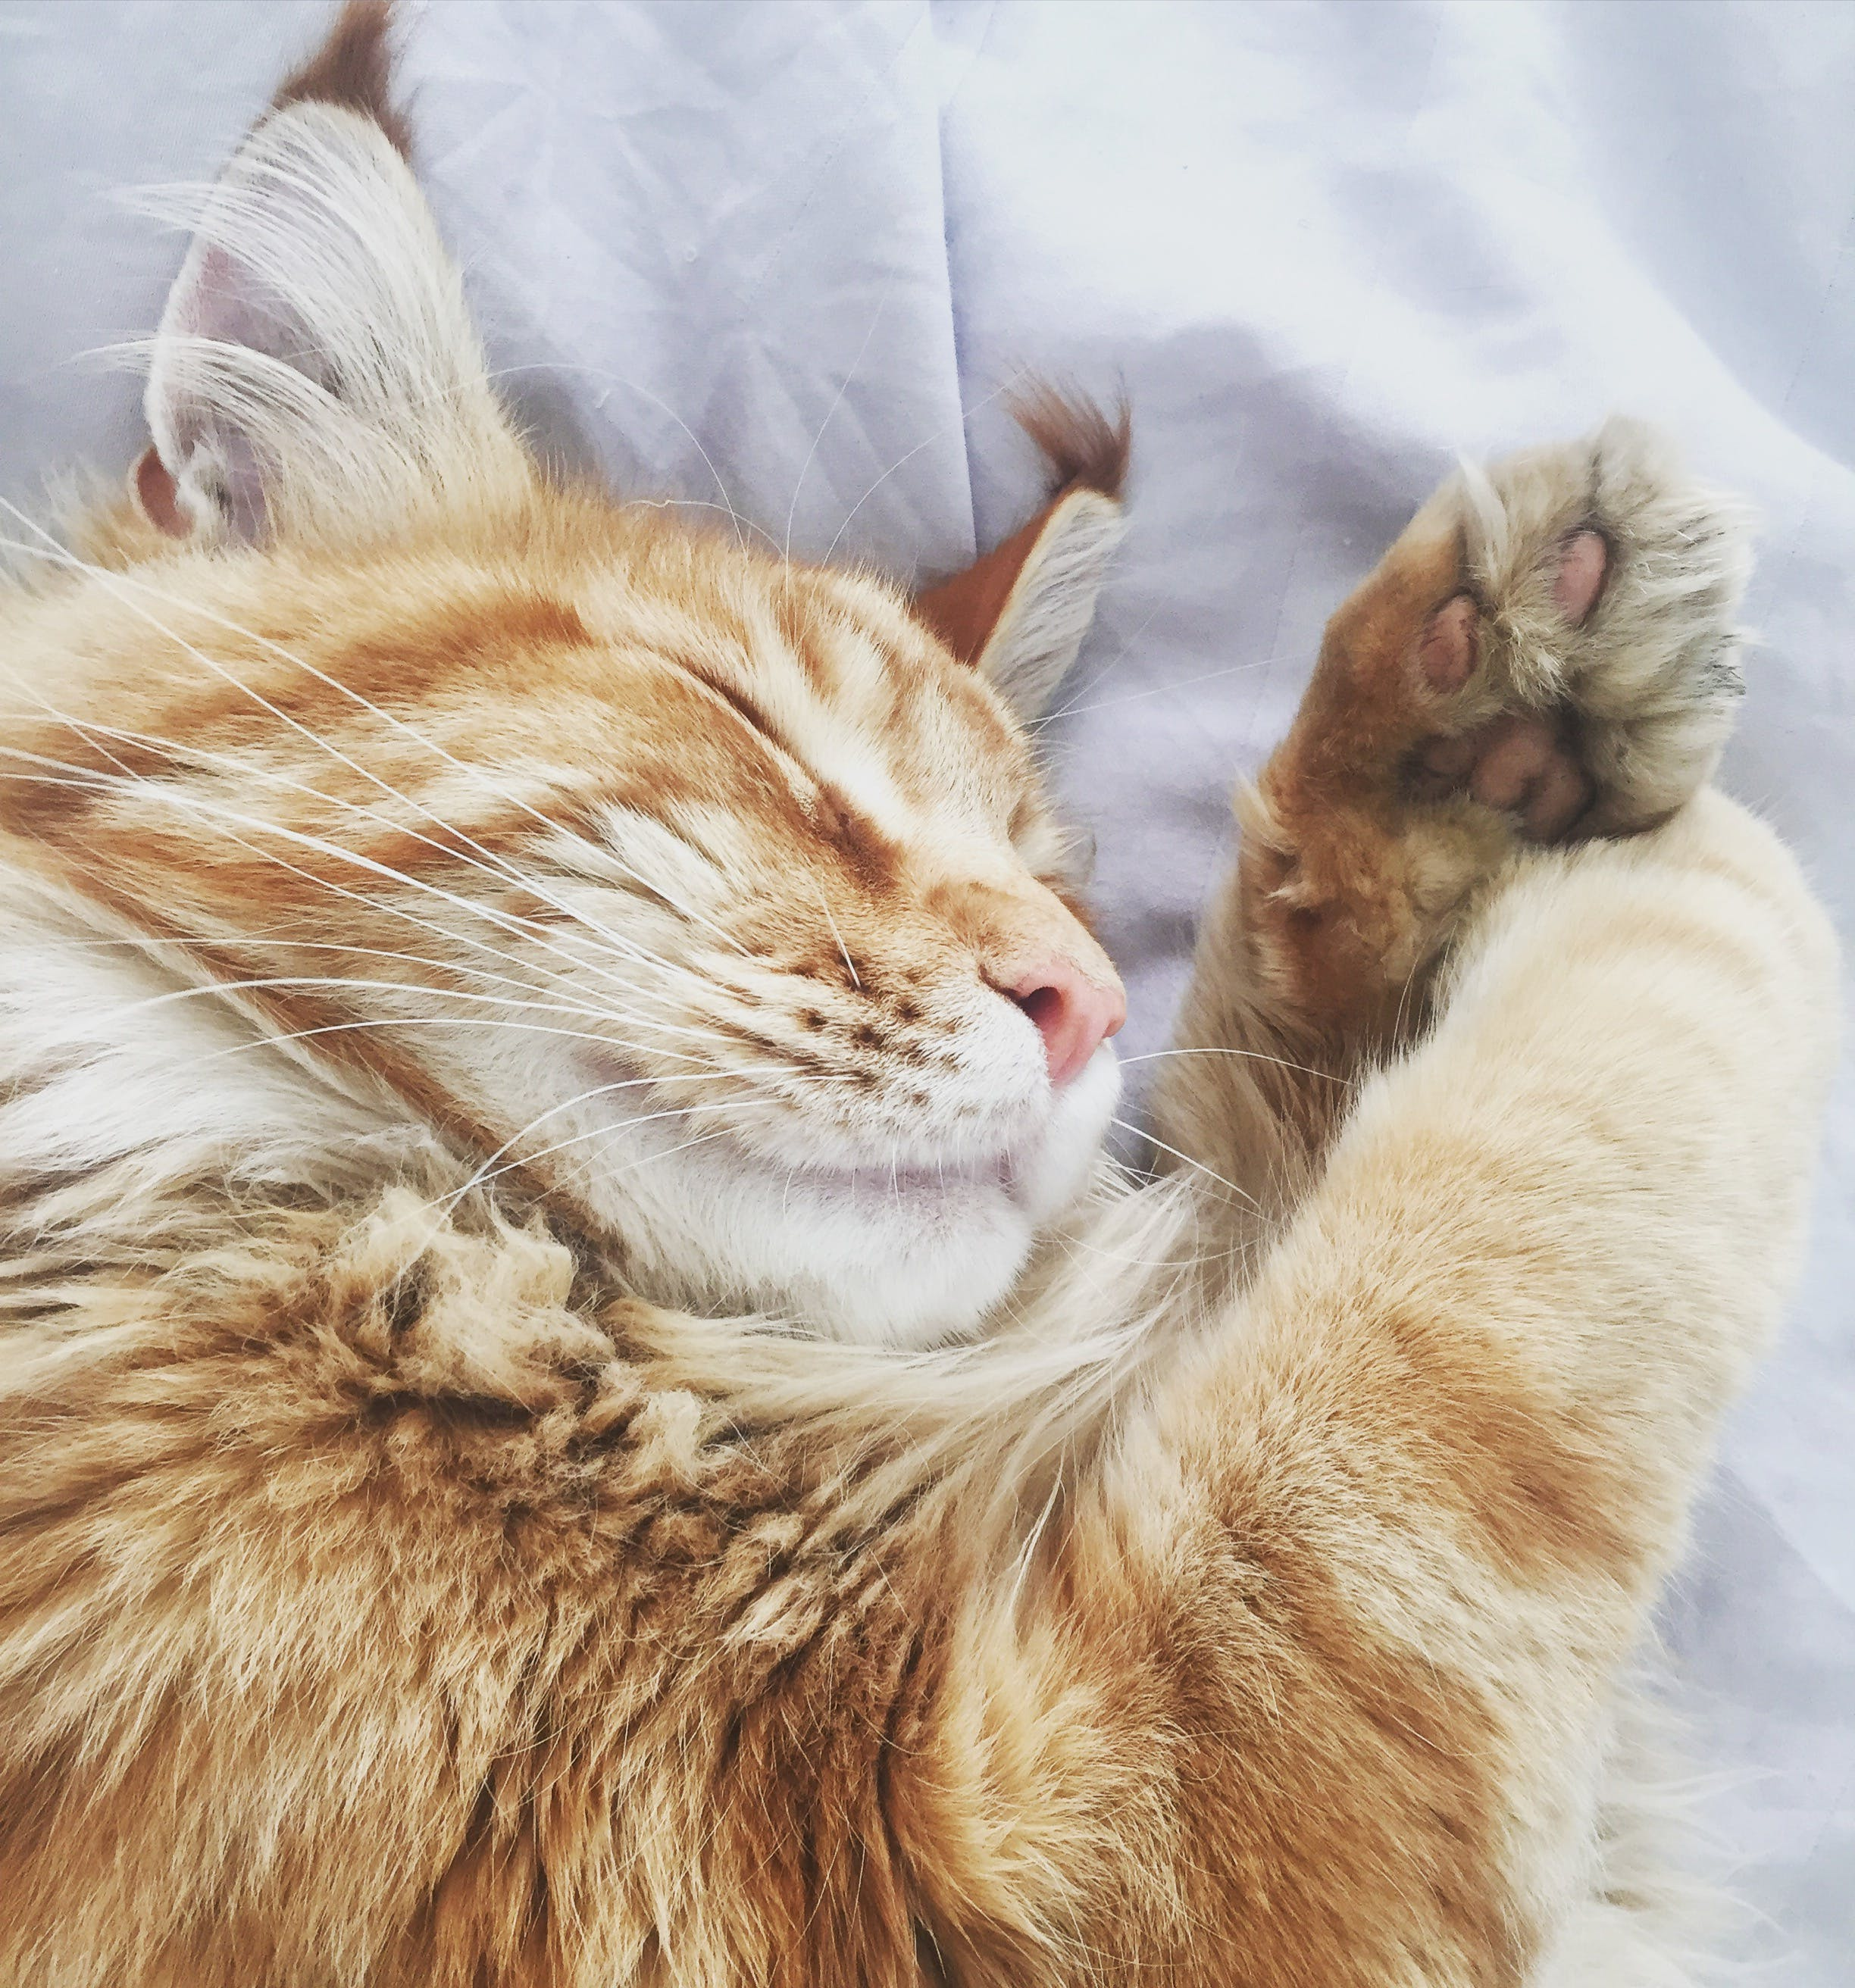 Orange Tabby Cat on White Fabric Bed Cover